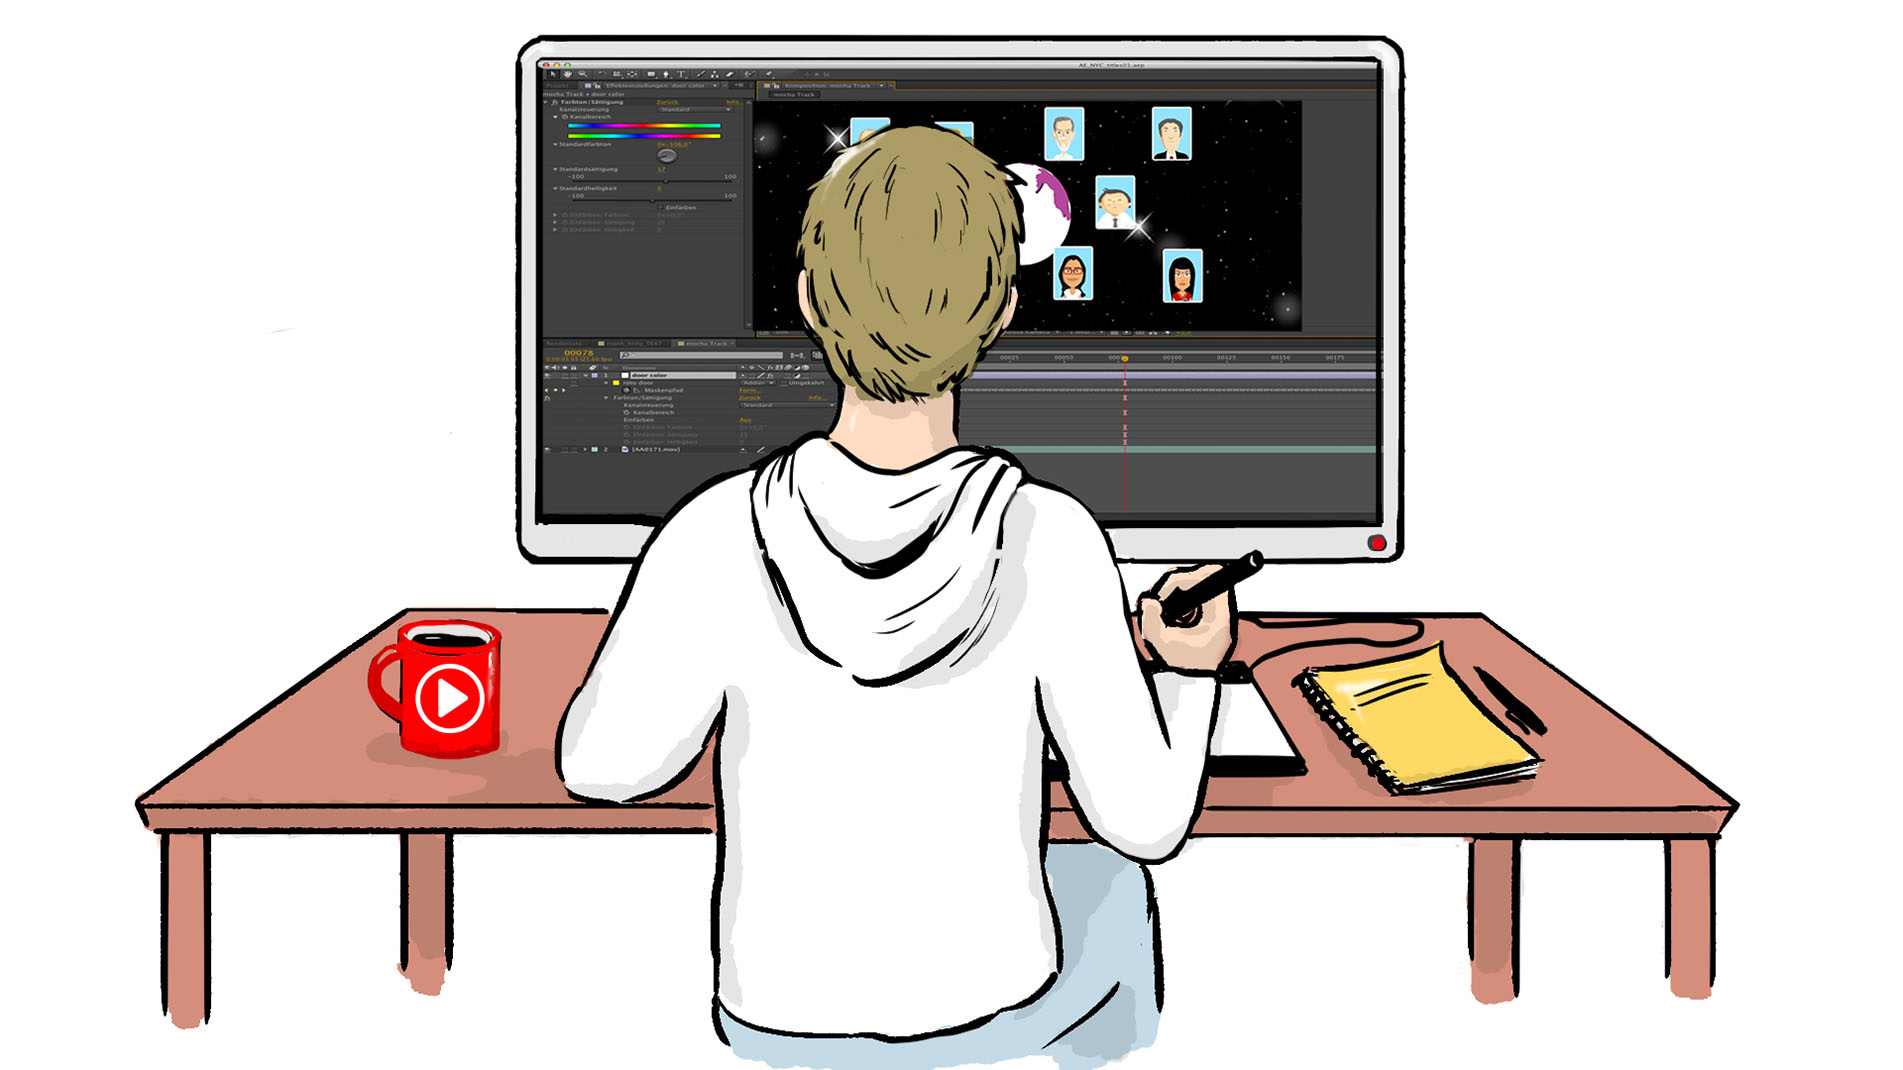 2D Animation als Erklärfilme erstellen – Produktion durch Marketing-Agentur